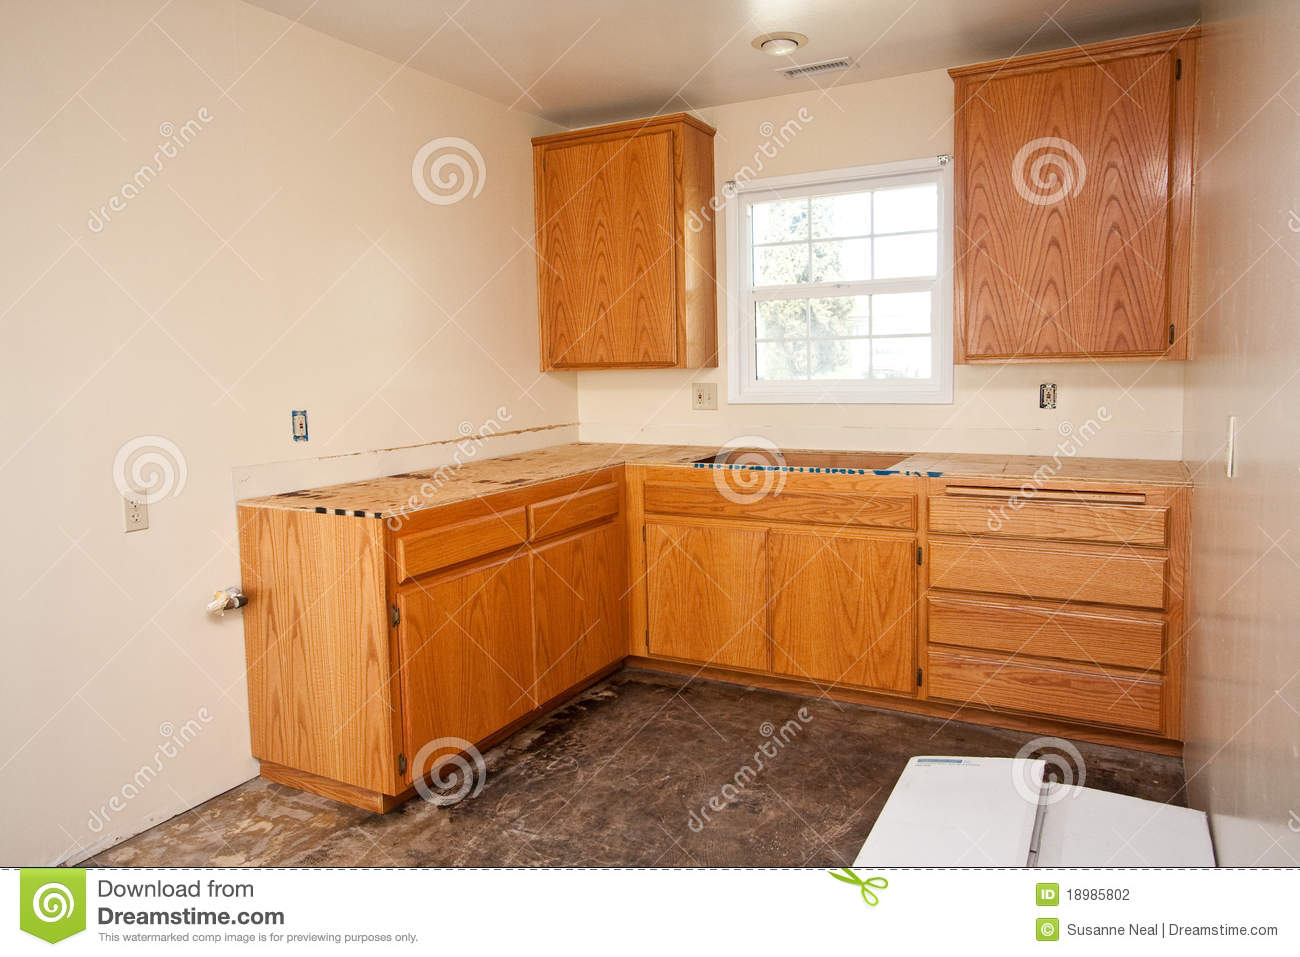 Kitchen Cabinets Without Countertop Stock Photography